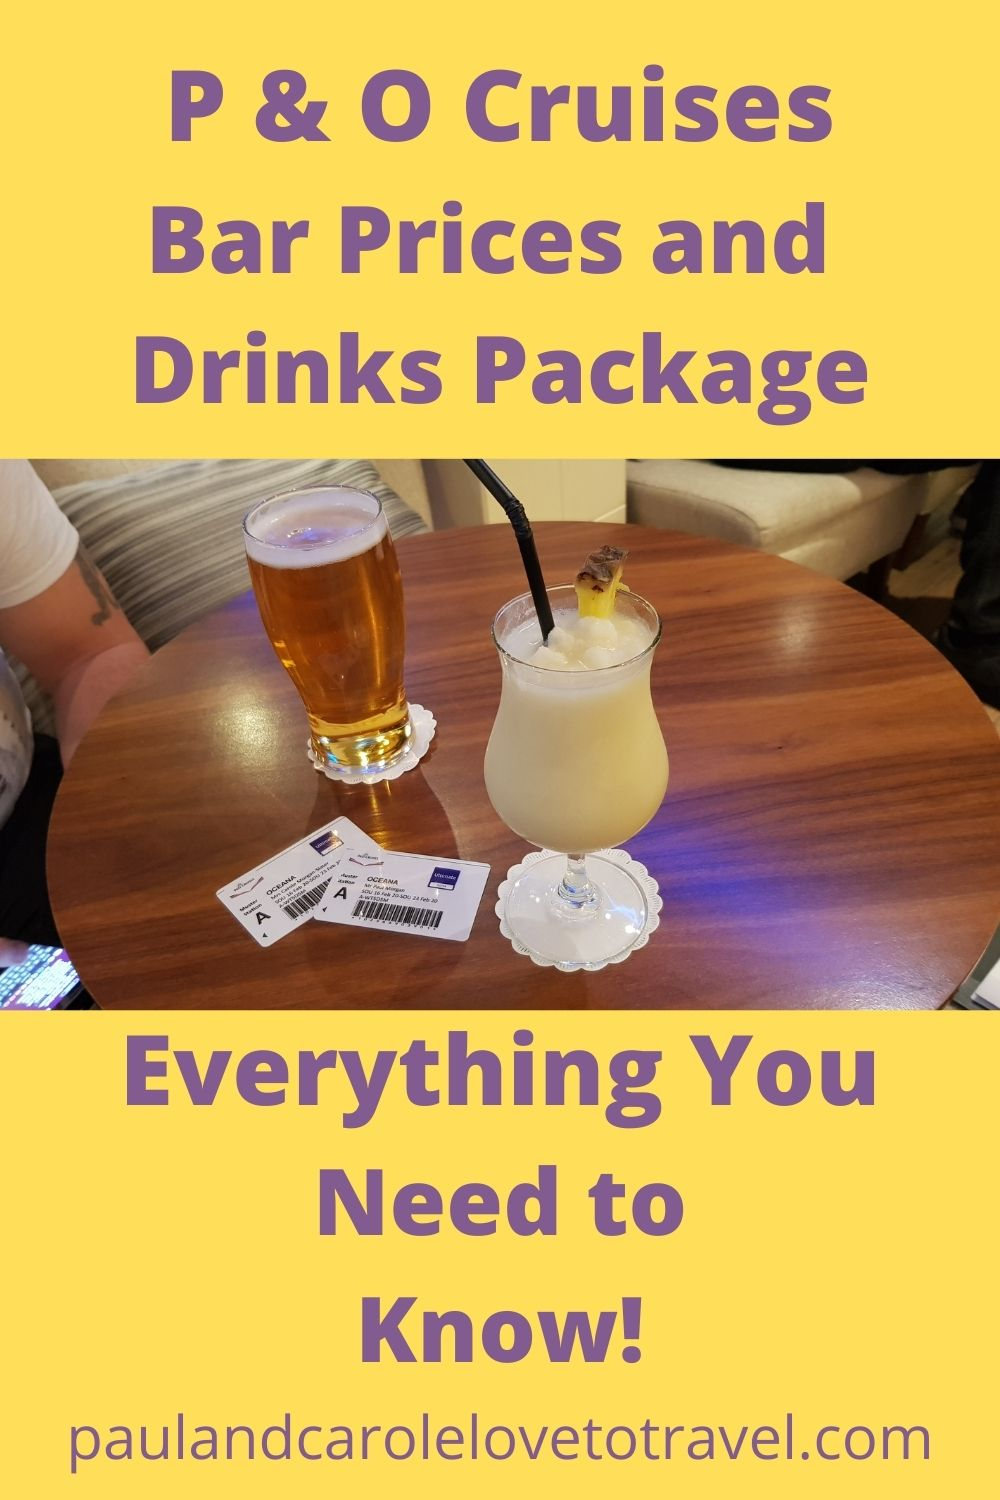 po cruises drinks packages and bar prices paul and carole love to travel